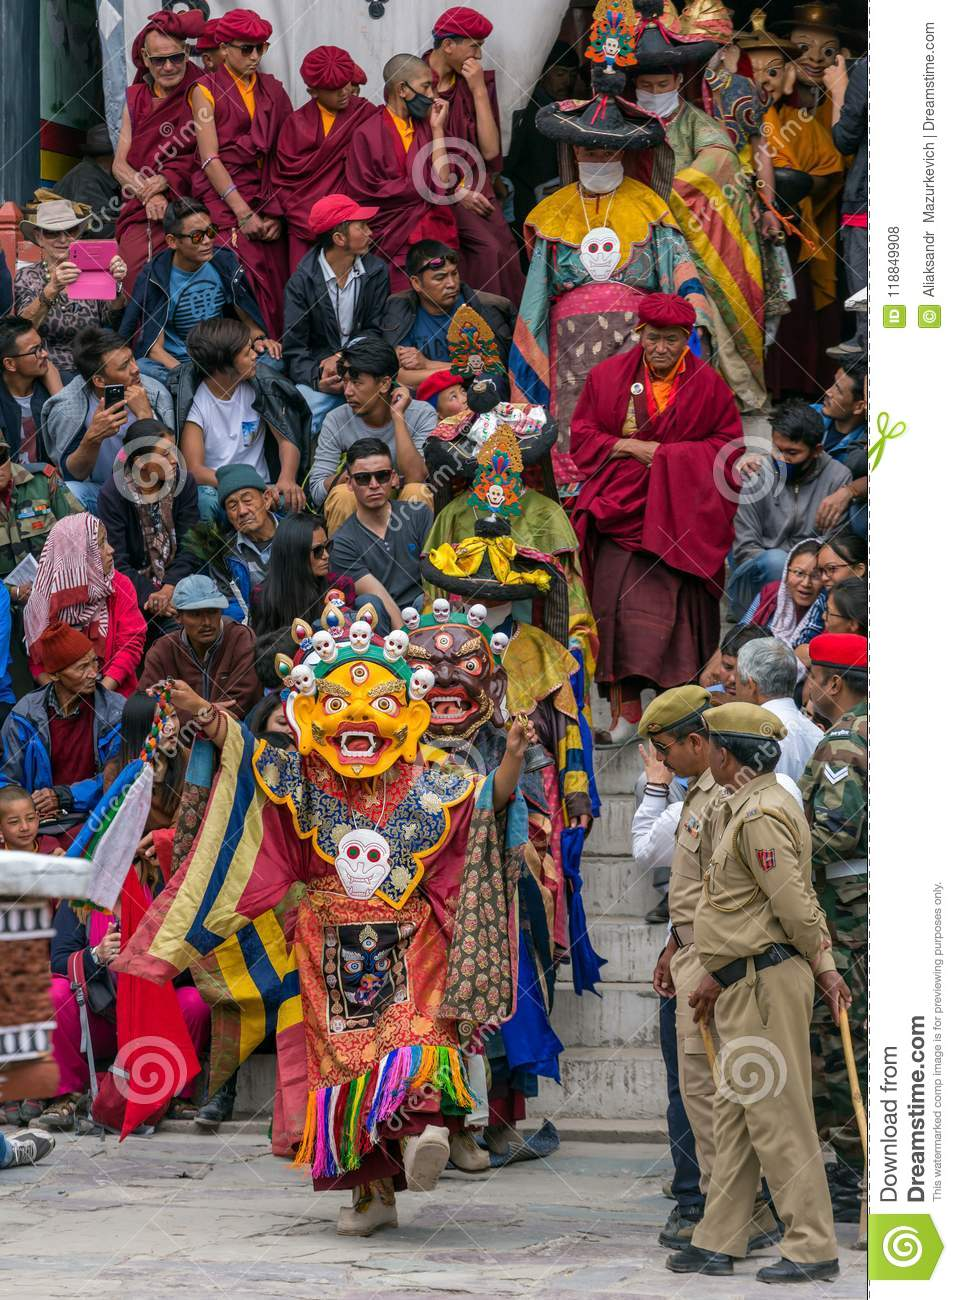 b679182c7 Leh, India - June 21, 2017: Unidentified monks in mask performing a  religious masked and costumed mystery dance of Tibetan Buddhism during the  Buddhist ...